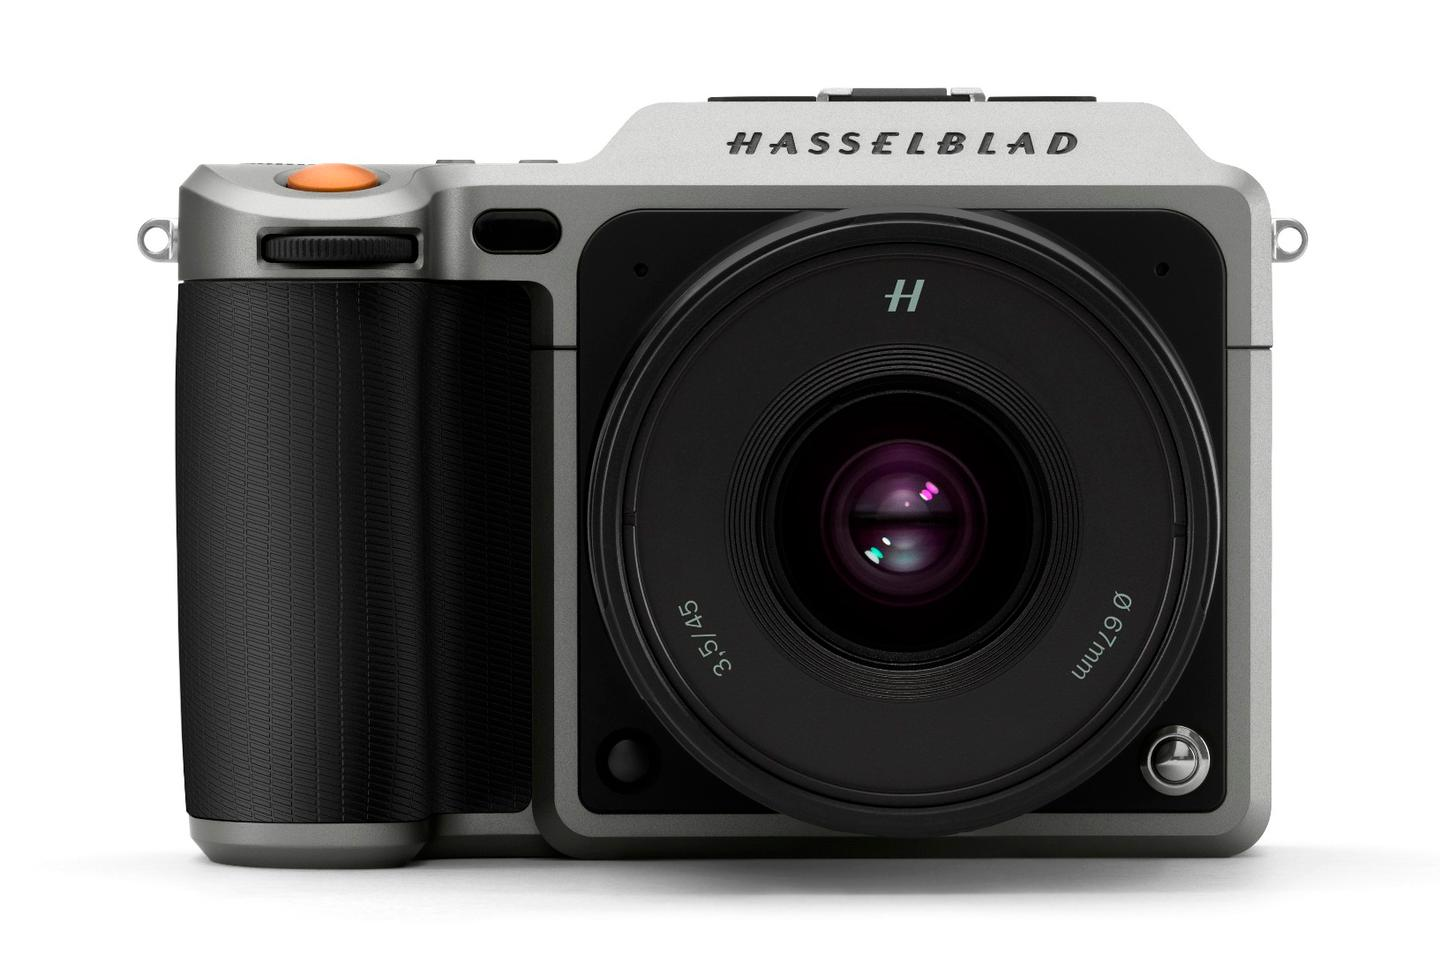 The Hasselblad X1D will use a new line of Hasselblad XCD lenses